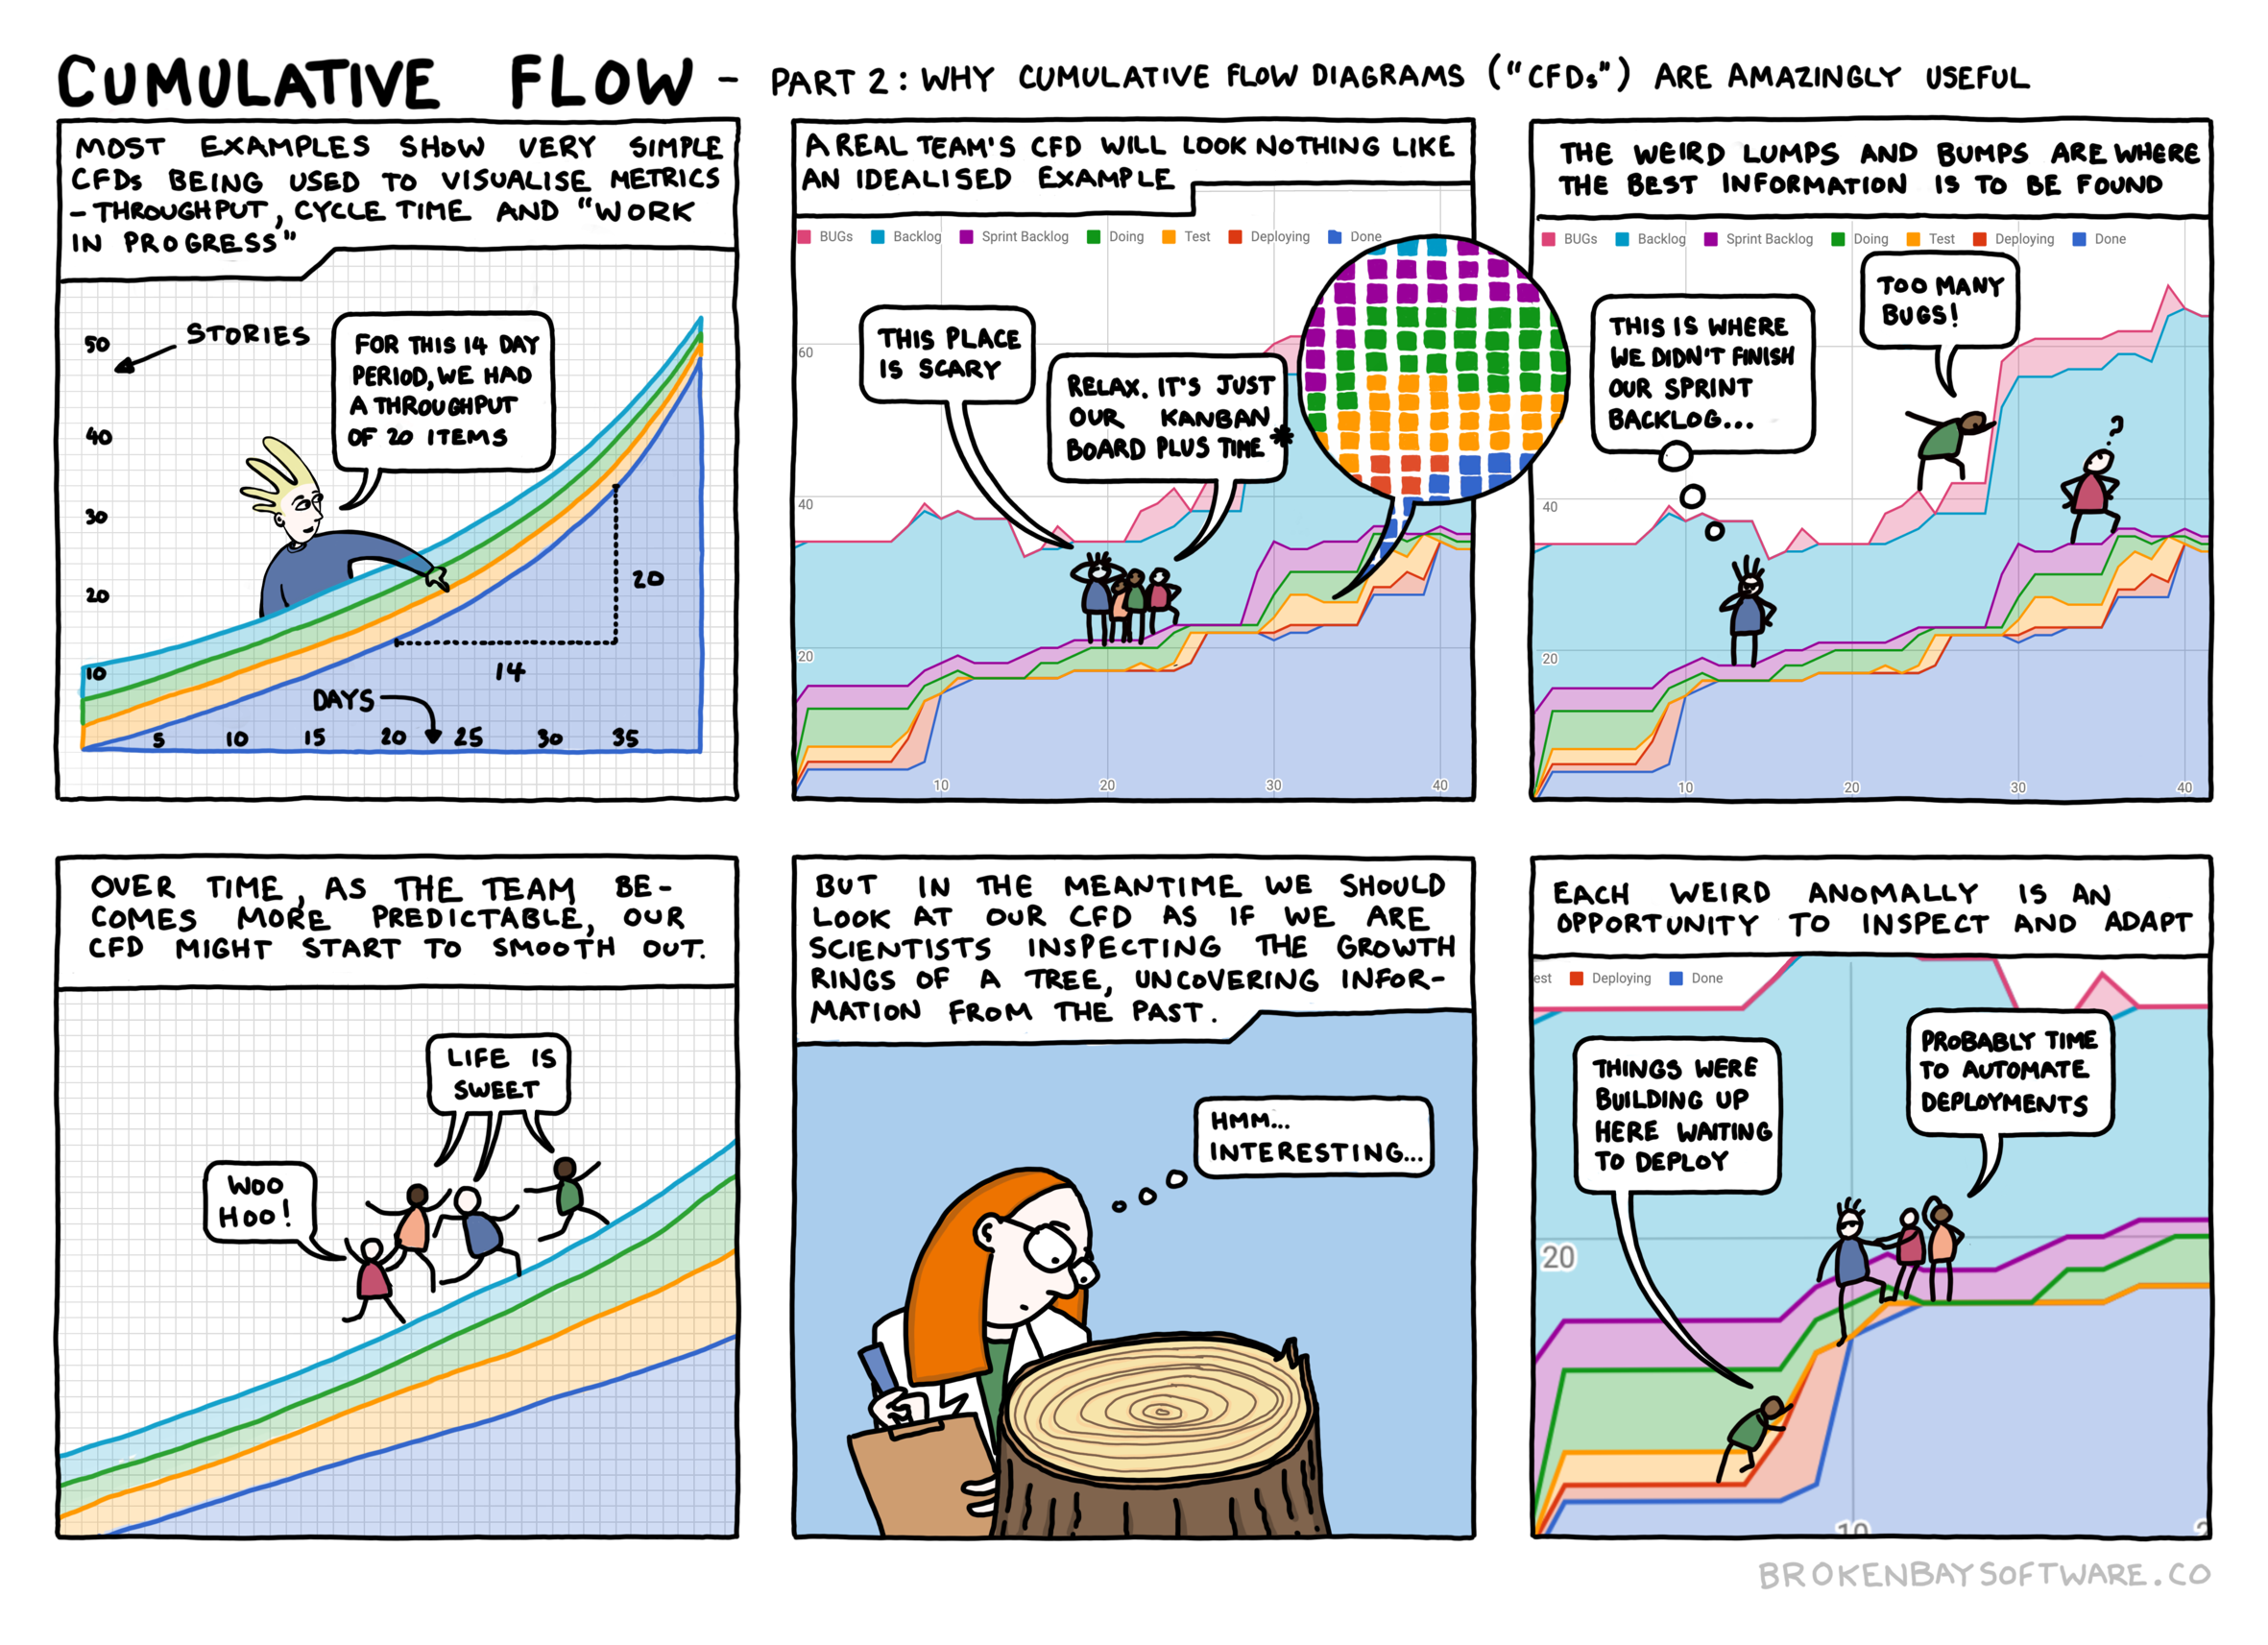 A comic about how cumulative flow diagrams can be useful for teams. Part 2 of 2.